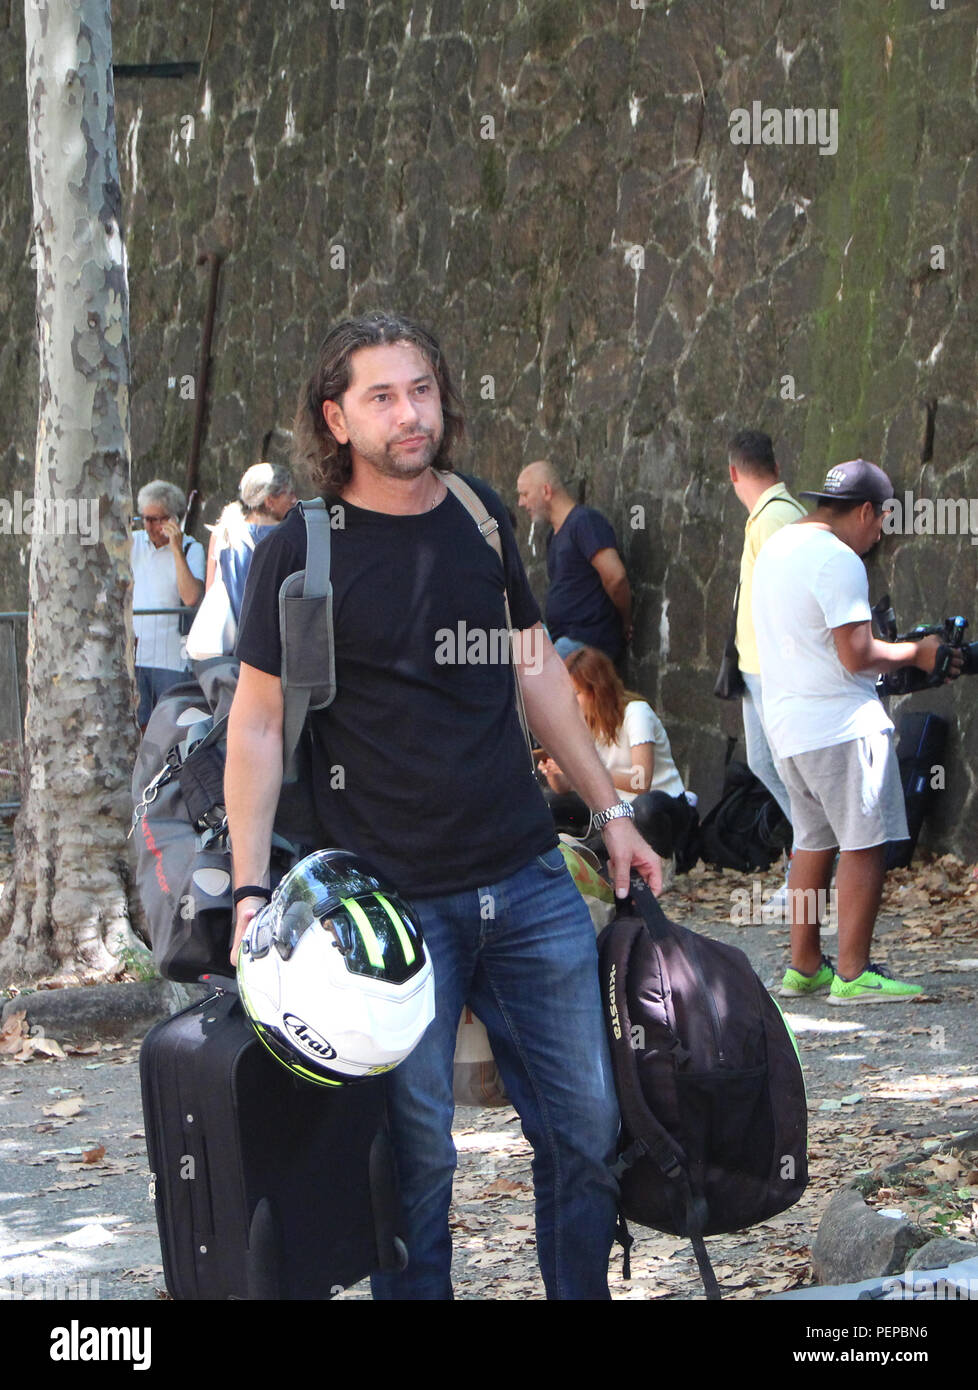 Genoa, Italy. 16th Aug, 2018. Luca walks with his suitcase and bags and a motorcycle helmet in his hand to his two-wheeler. Luca is one of the tenants of the eleven houses who were evacuated after a bridge collapsed. (to dpa ''Zero hour for Genoa' - catastrophe plunges city into crisis' of 17.08.2018) Credit: Fabian Nitschmann/dpa/Alamy Live News - Stock Image